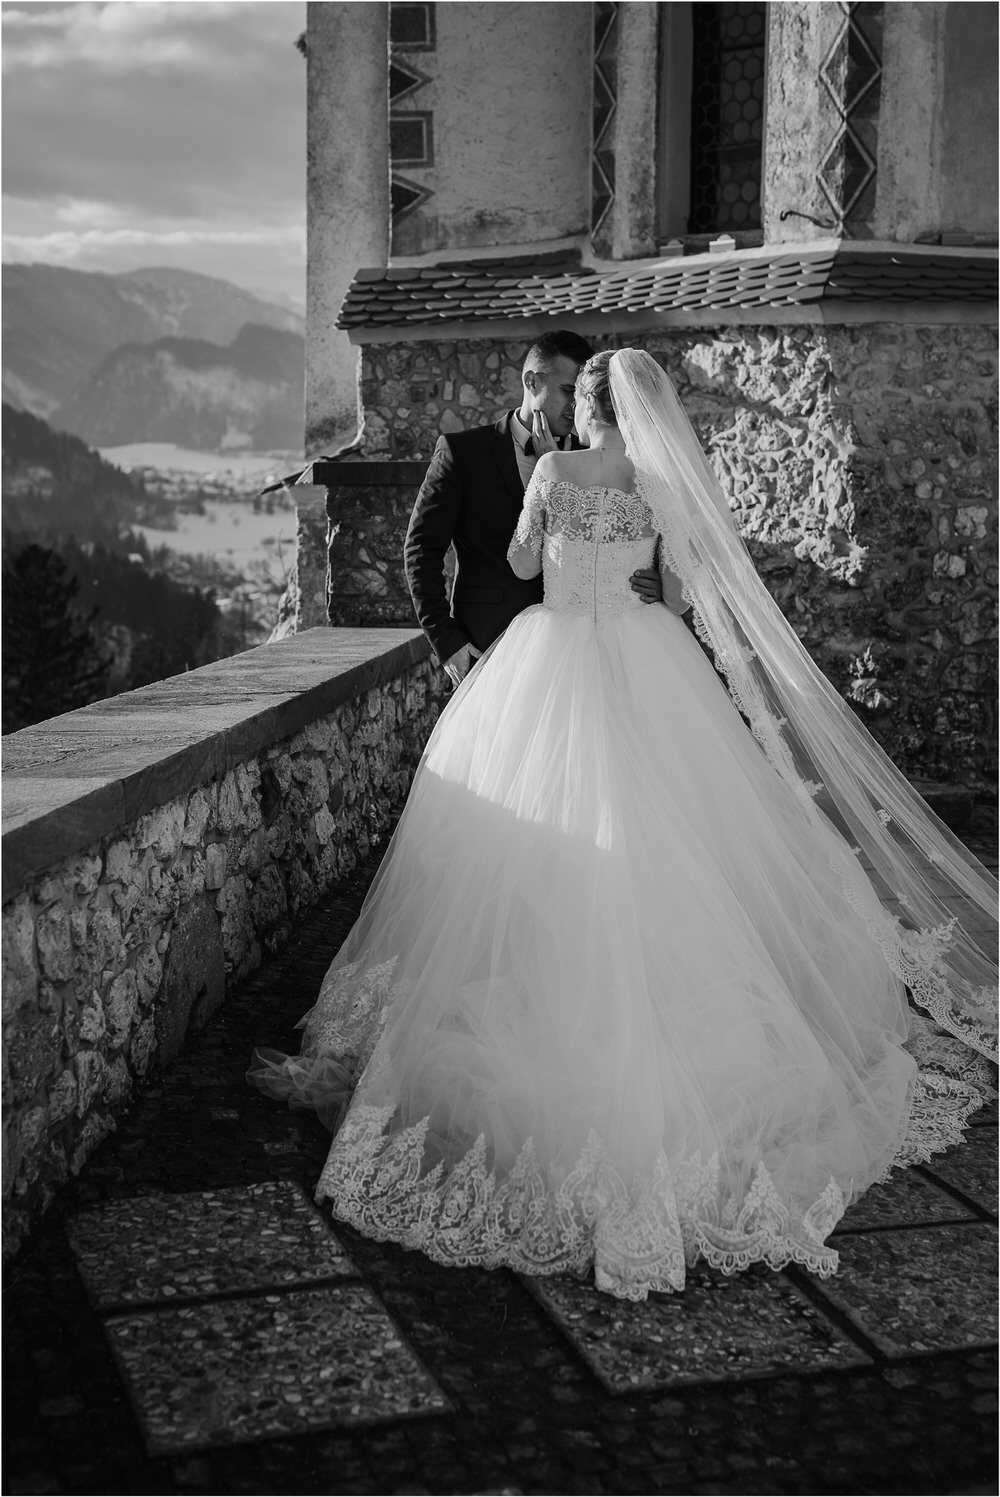 destination wedding italy greece ireland france uk photographer poroka poročni fotograf poročno fotografiranje gredič tri lučke bled tuscany 0137.jpg